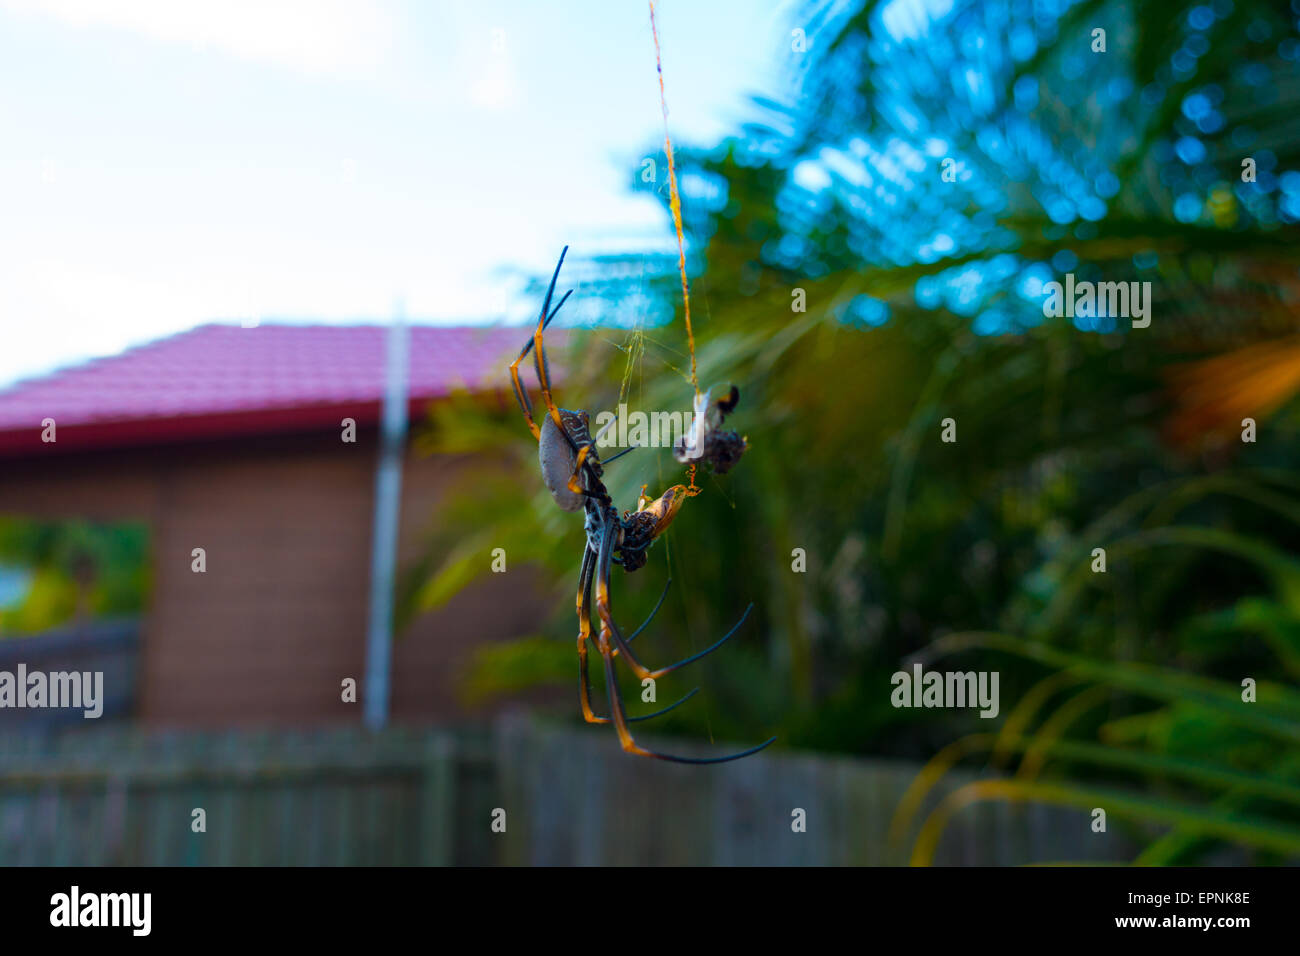 Australian Spider with catch in Backyard - Stock Image